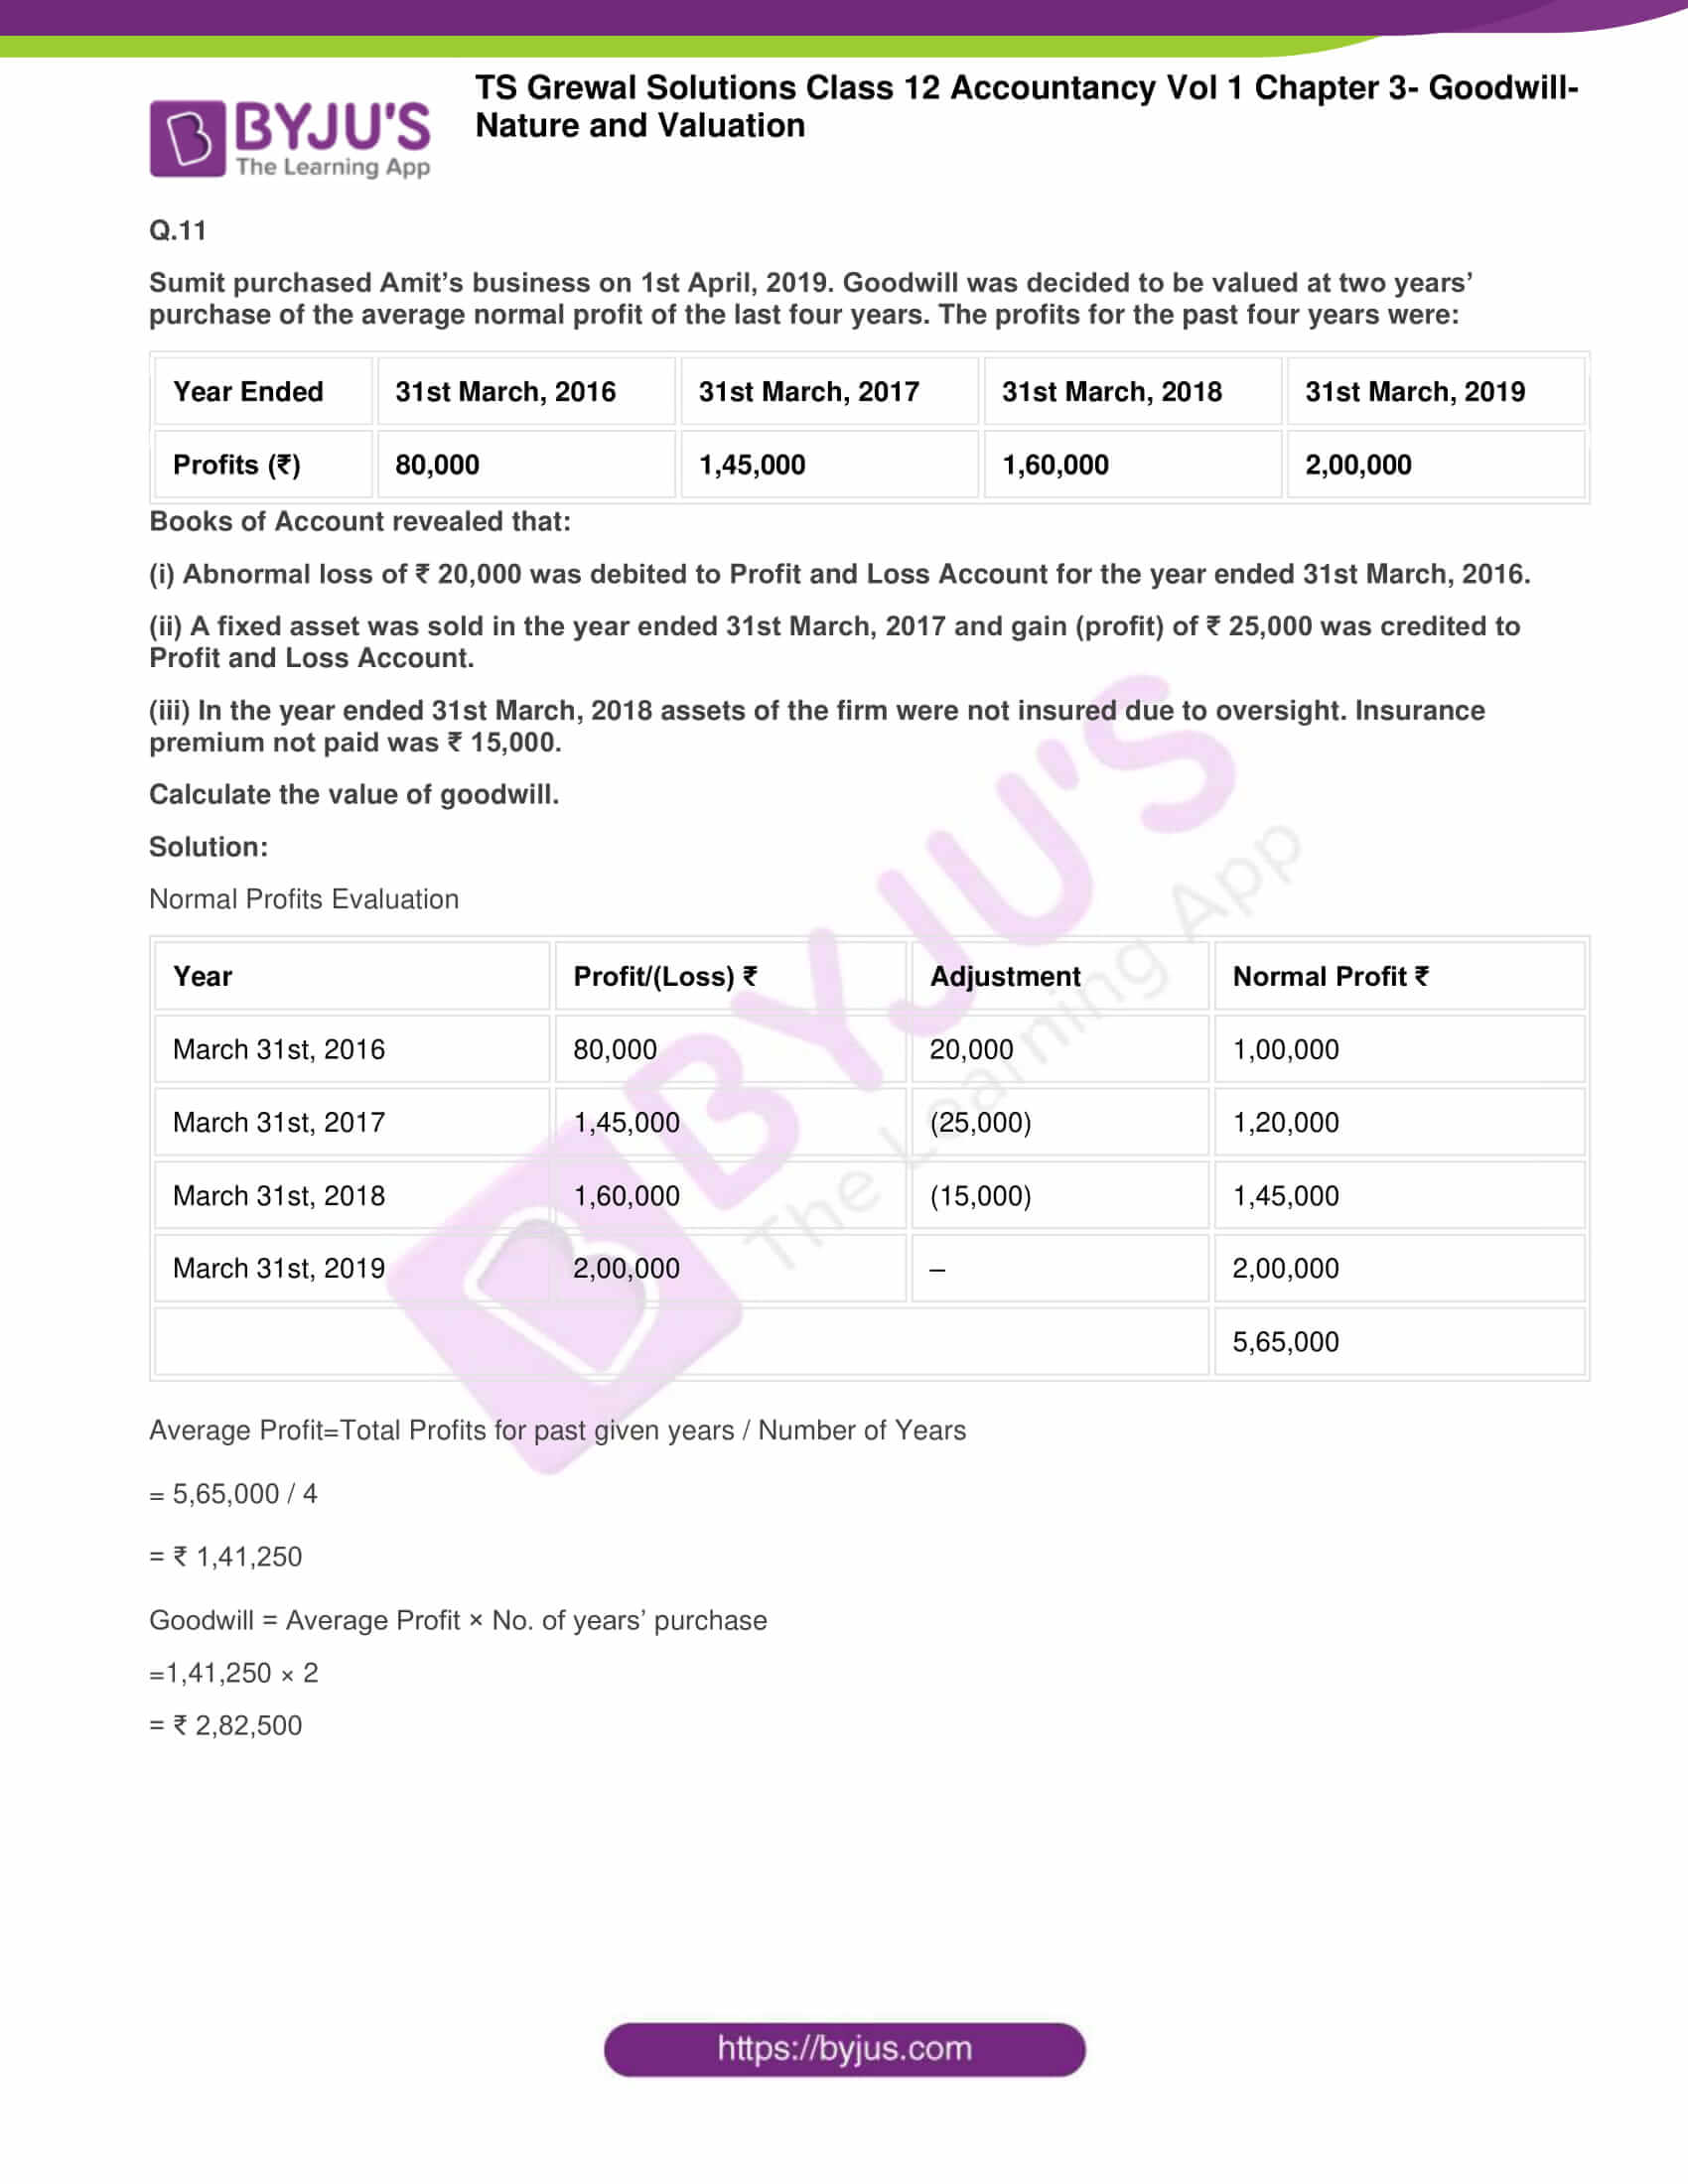 ts grewal solutions for class 12 accountancy vol 1 chapter 309